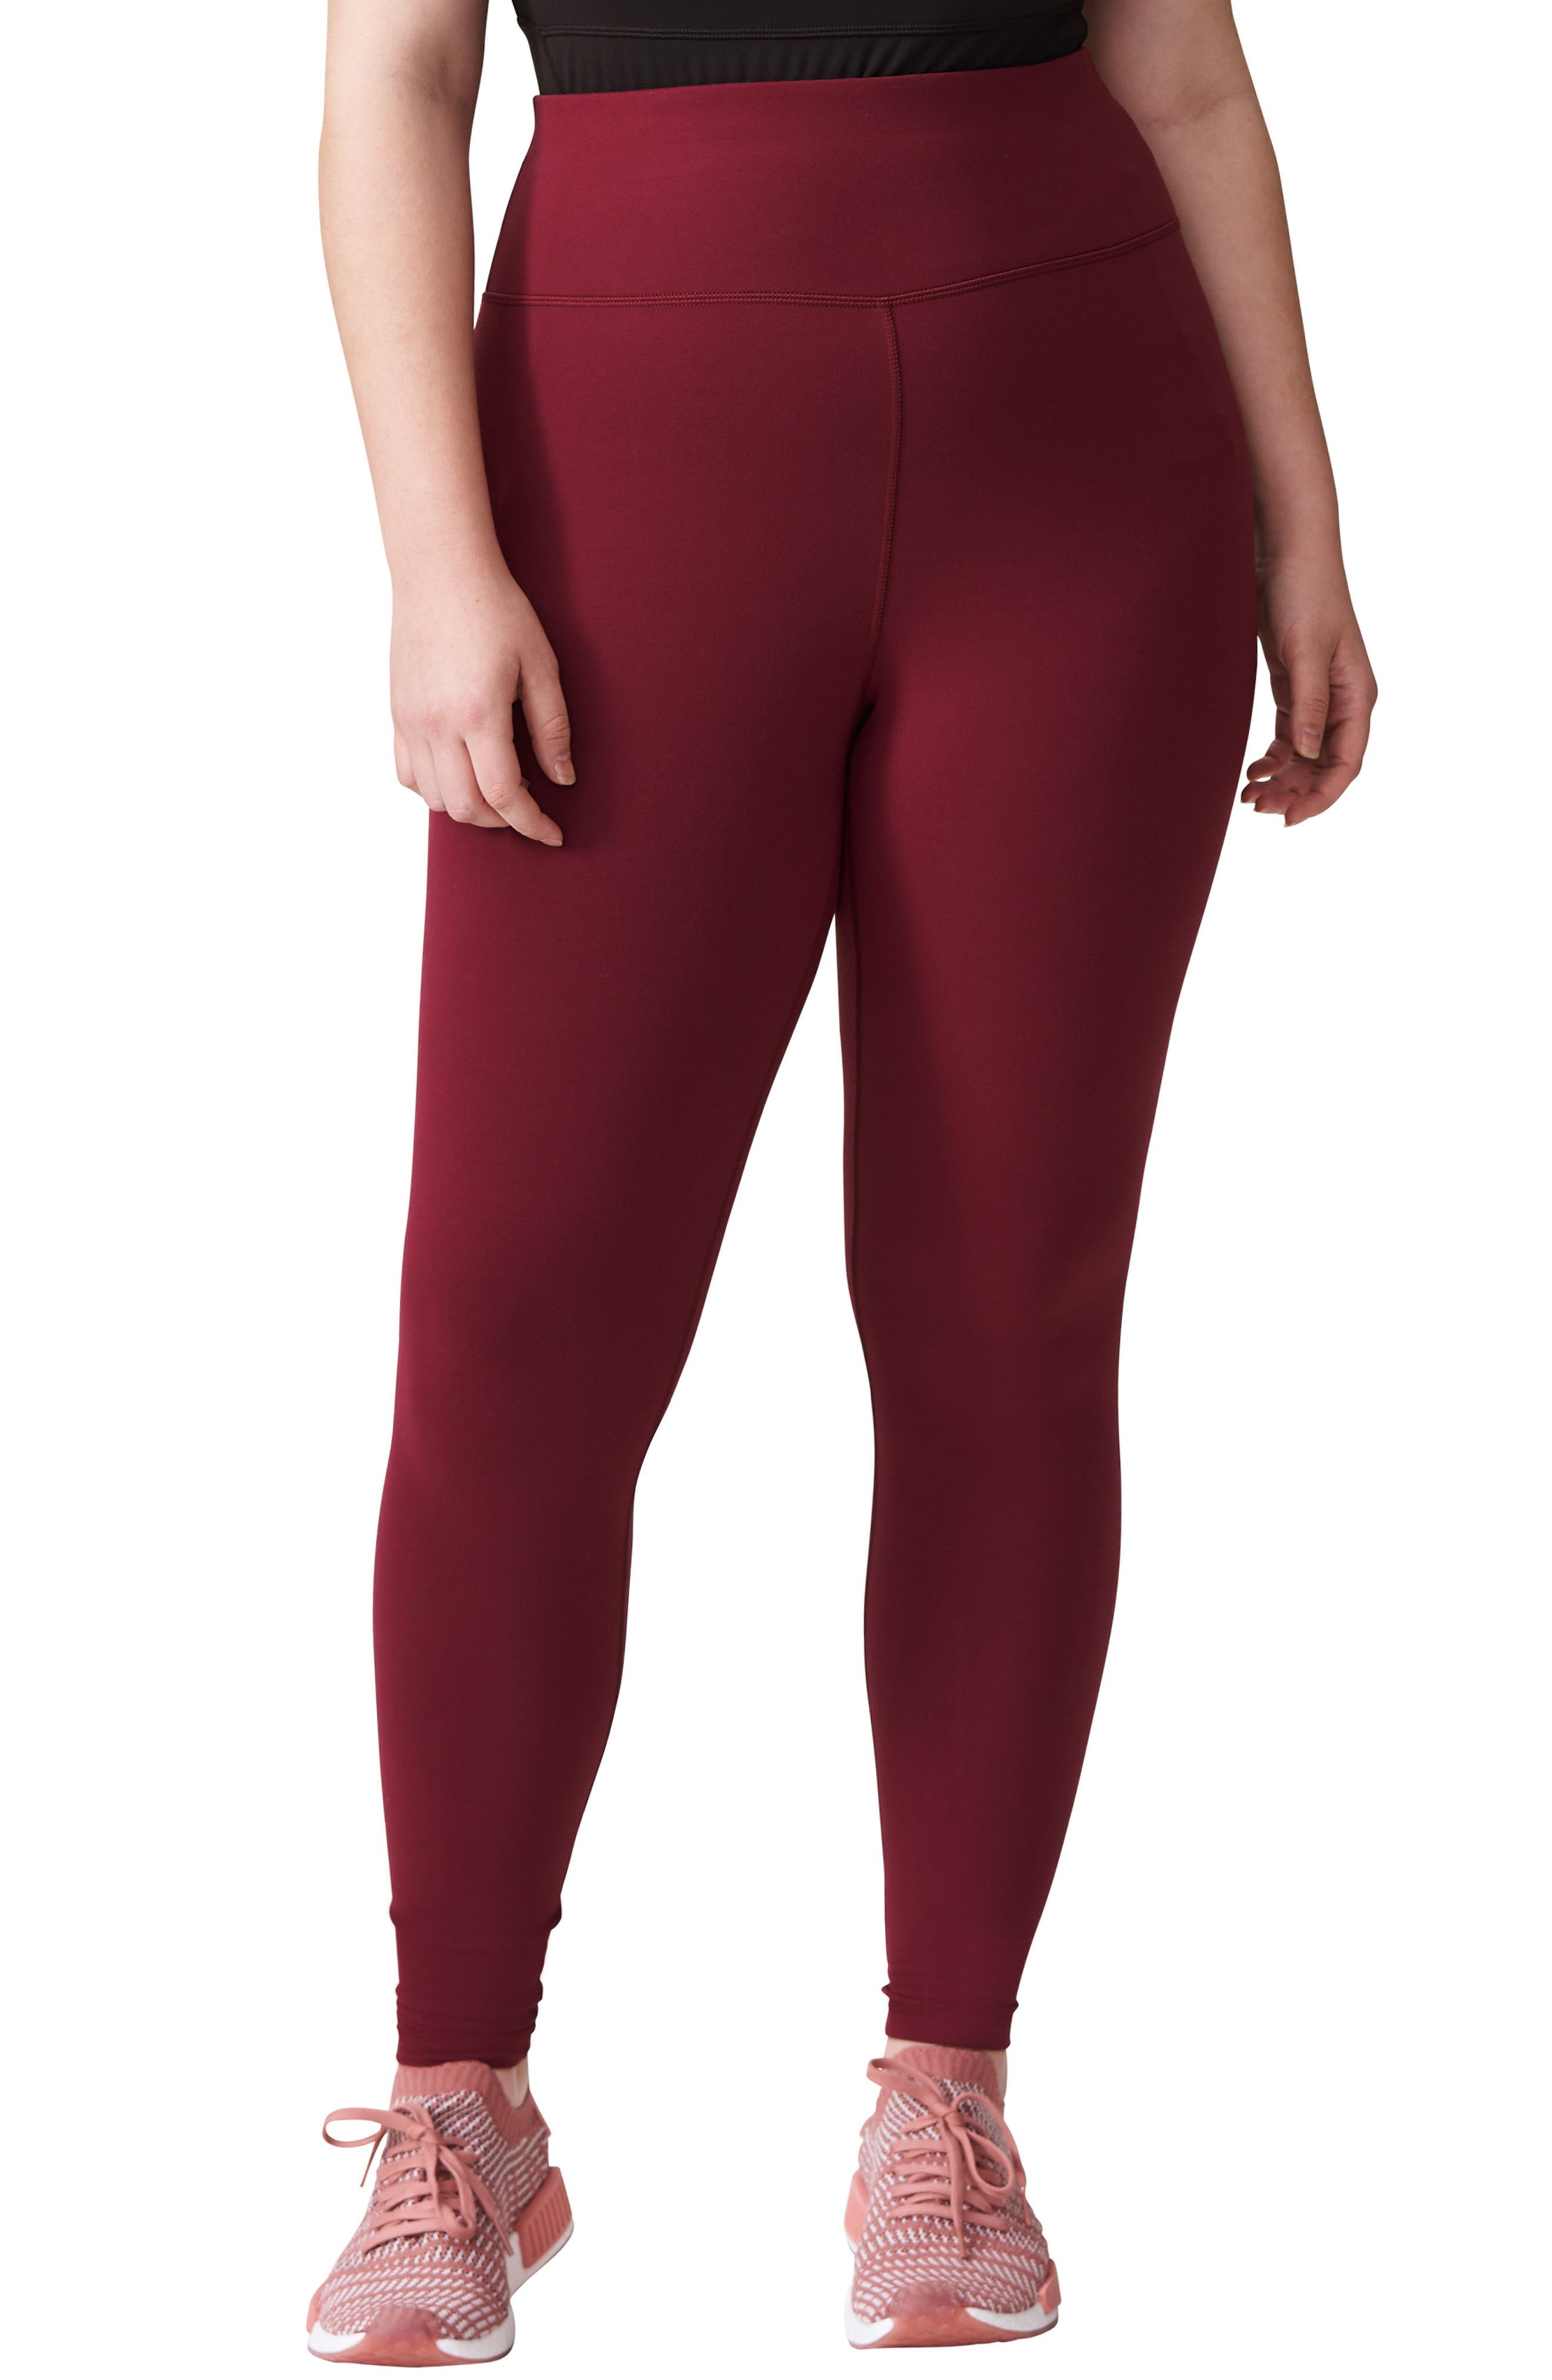 Plus Size Universal Standard Core Leggings, XL (30W-3) - Red